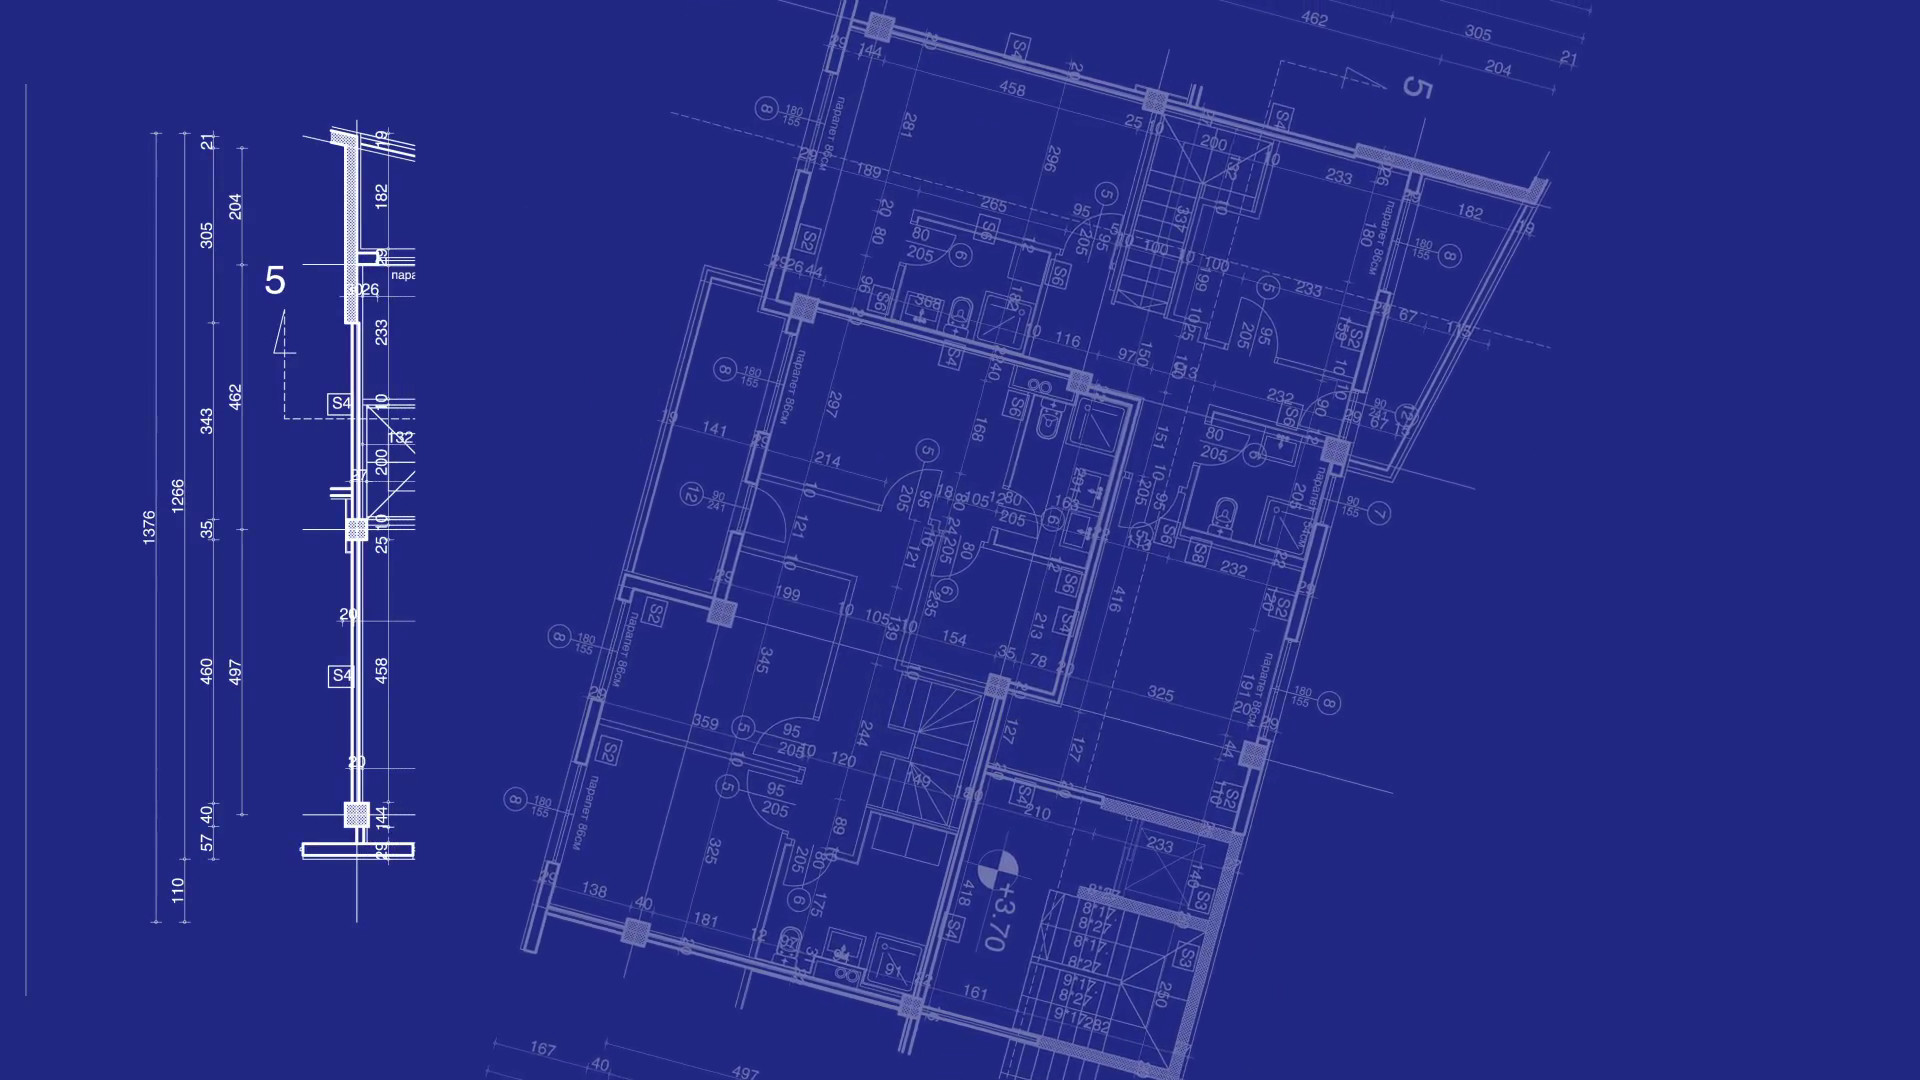 Blue print background 46 images 1920x1200 image american truck simulator background blueprintg steam trading cards wiki fandom powered by wikia malvernweather Image collections